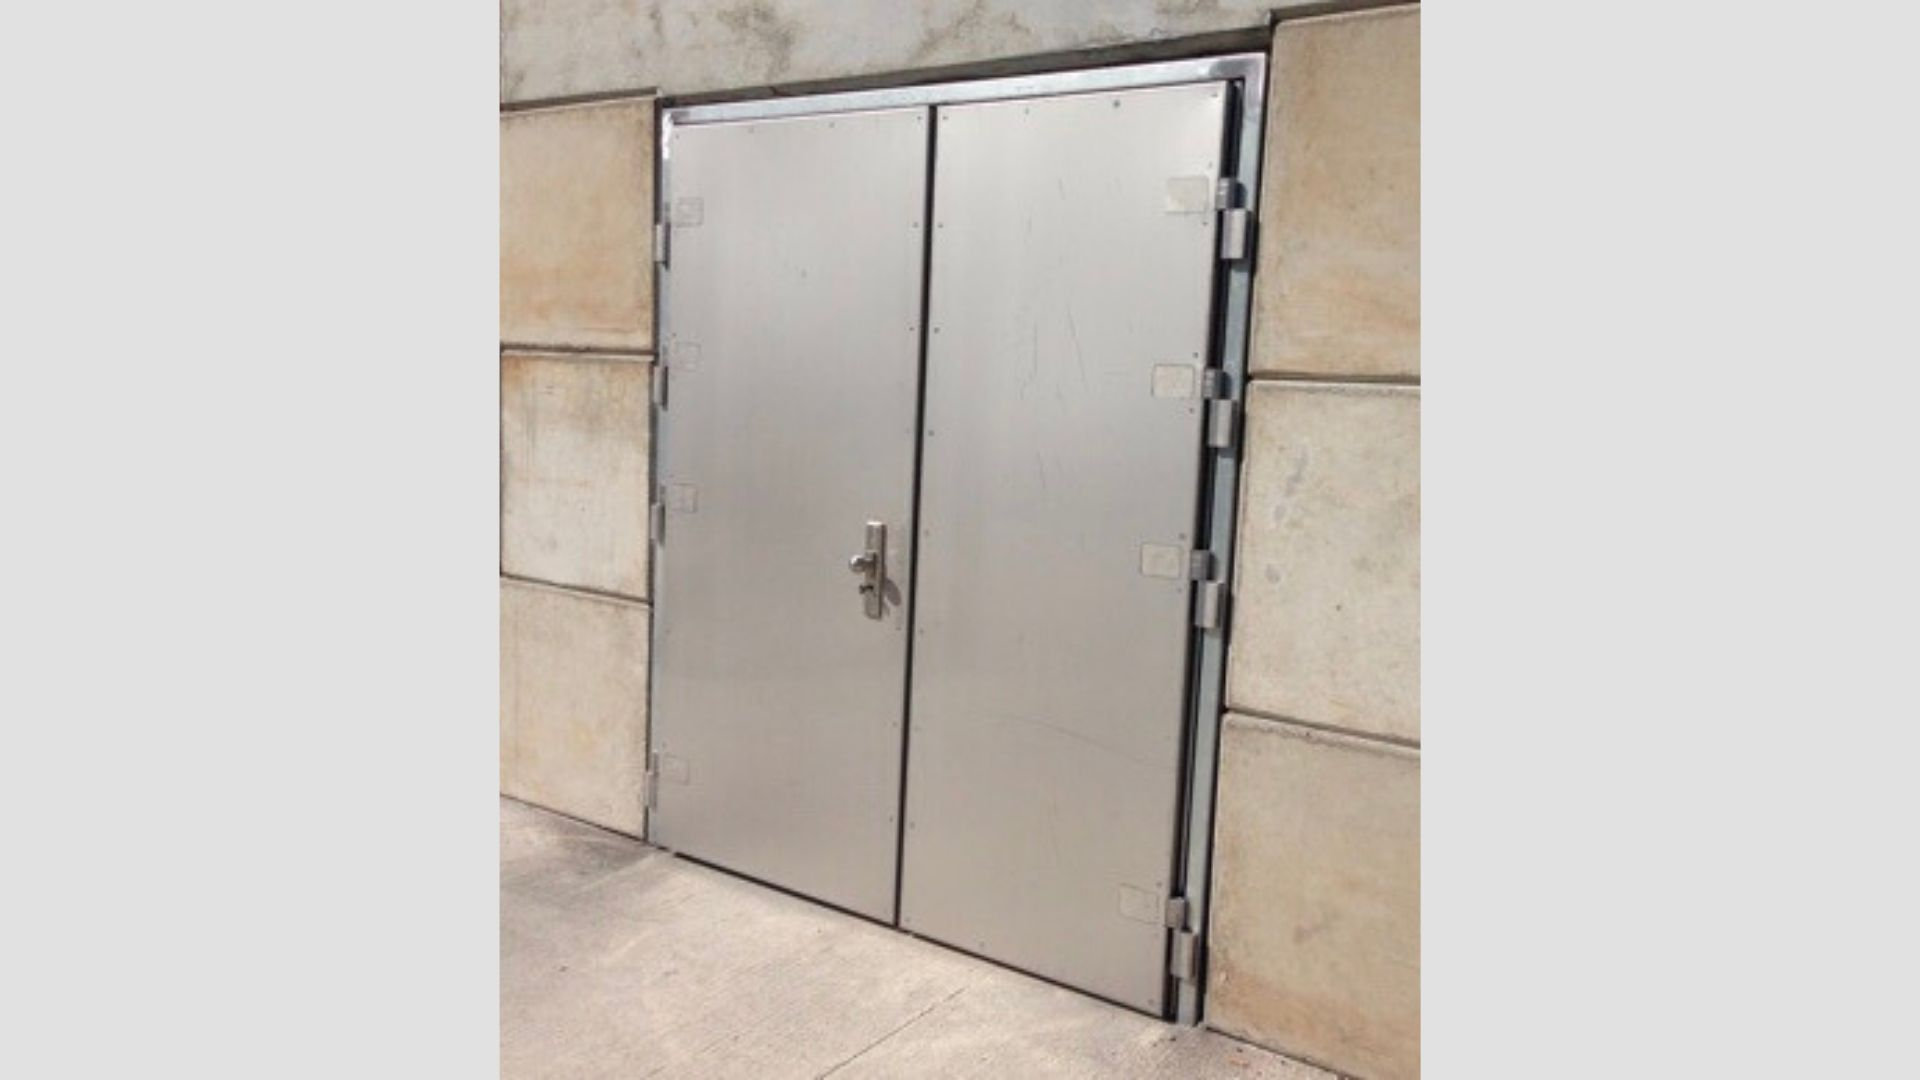 High security door - Talos